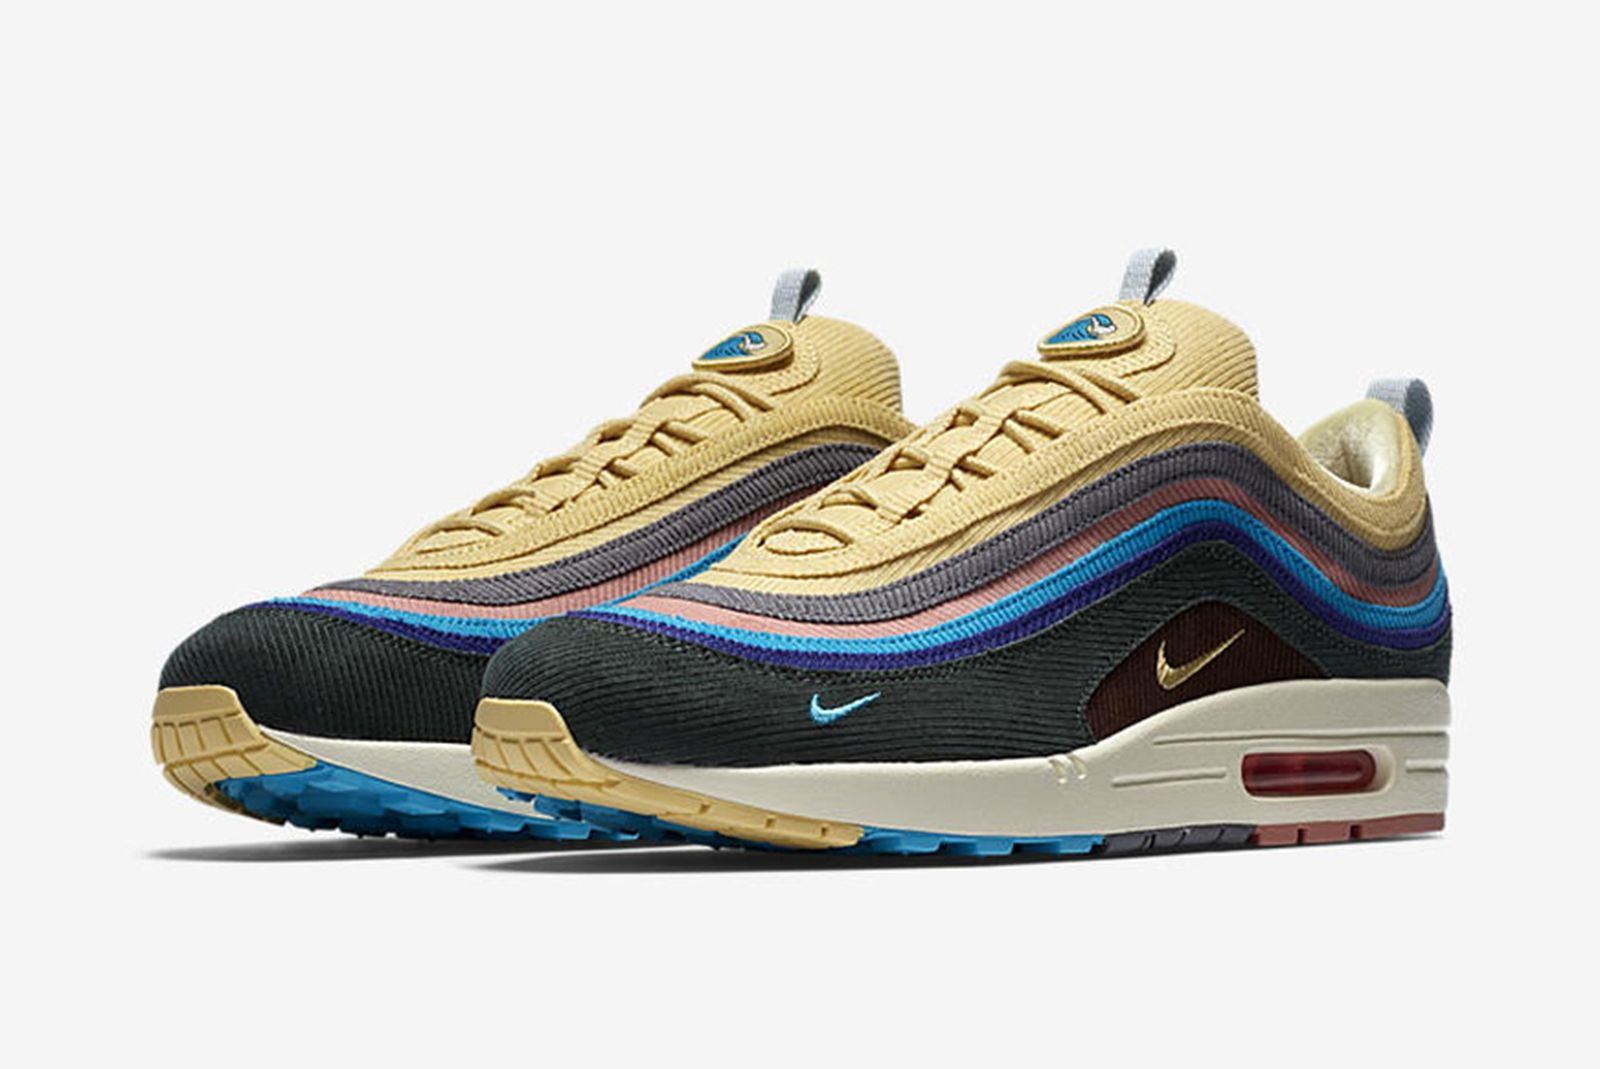 sean-wotherspoon-nike-air-max-1-97-release-date-price-01